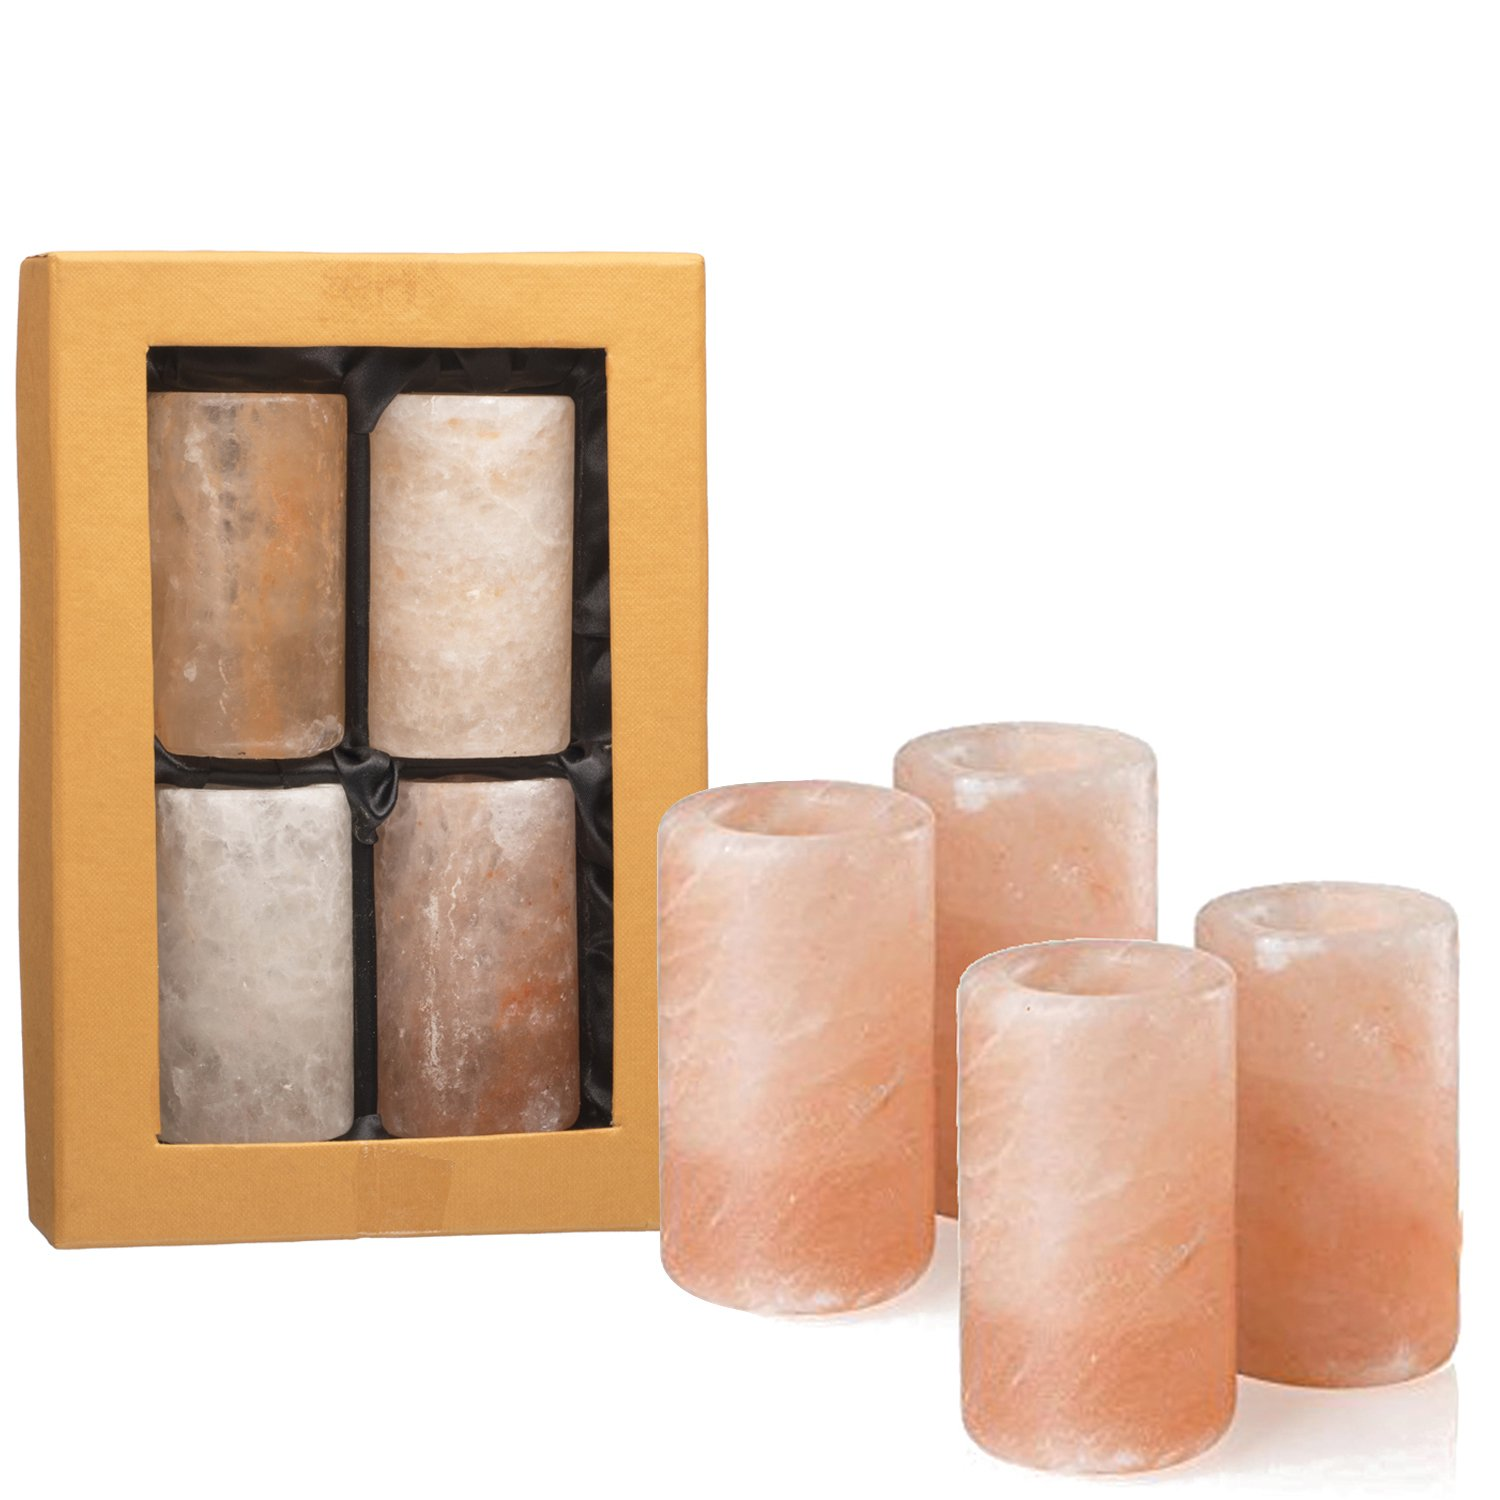 UmAid Pink Himalayan Salt Tequila Shot Glasses (Set of 4) Unique Barware 1.25-1.5 Ounces, Drinking Glass, Hand Carved Shooters Pure Himalayan Salt, Kosher FDA Certified Food Grade Salt